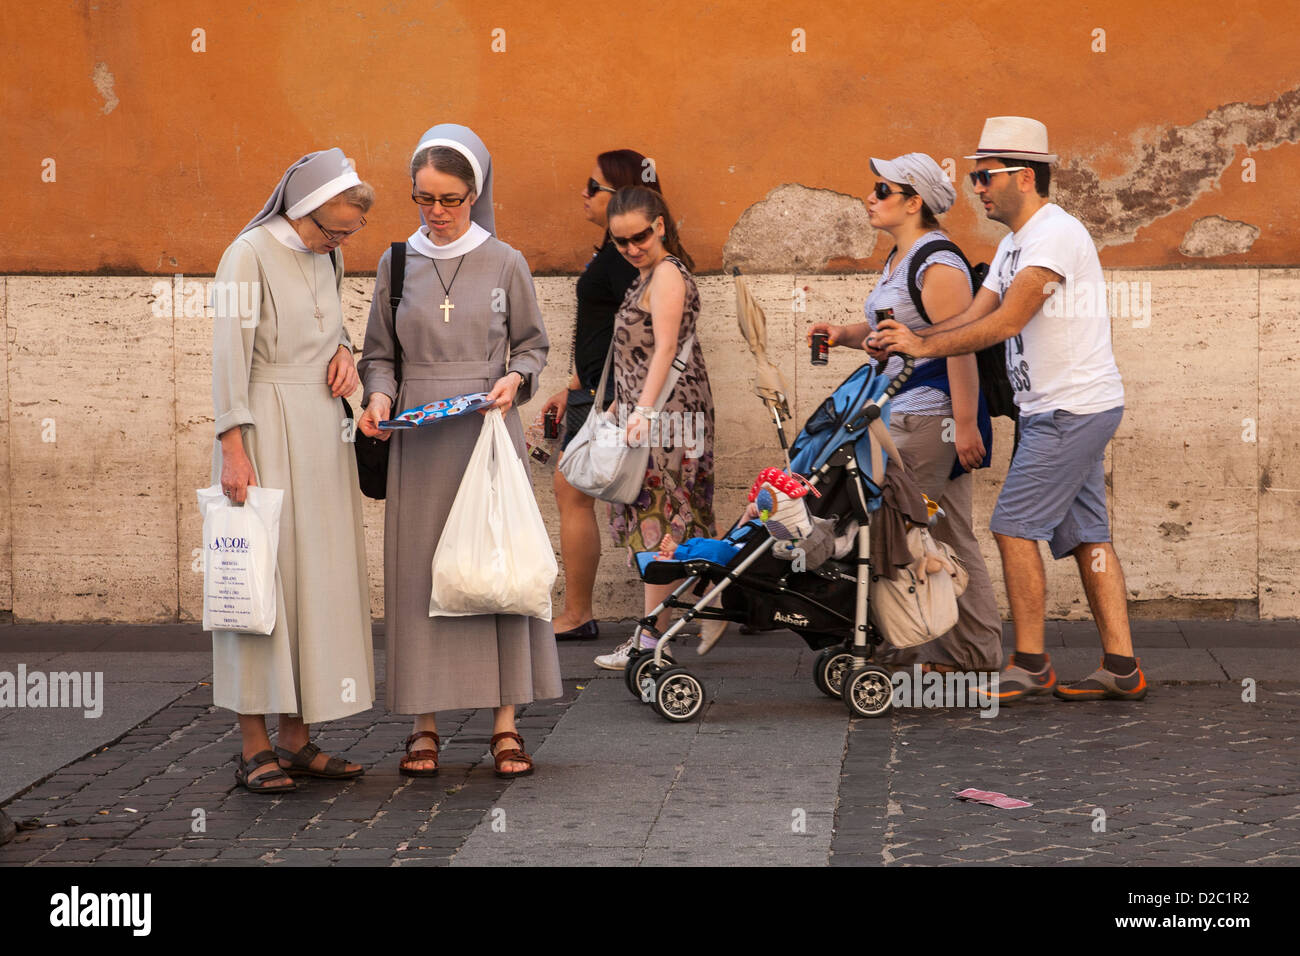 nuns looking at a map The Vatican City Rome Italy Stock Photo